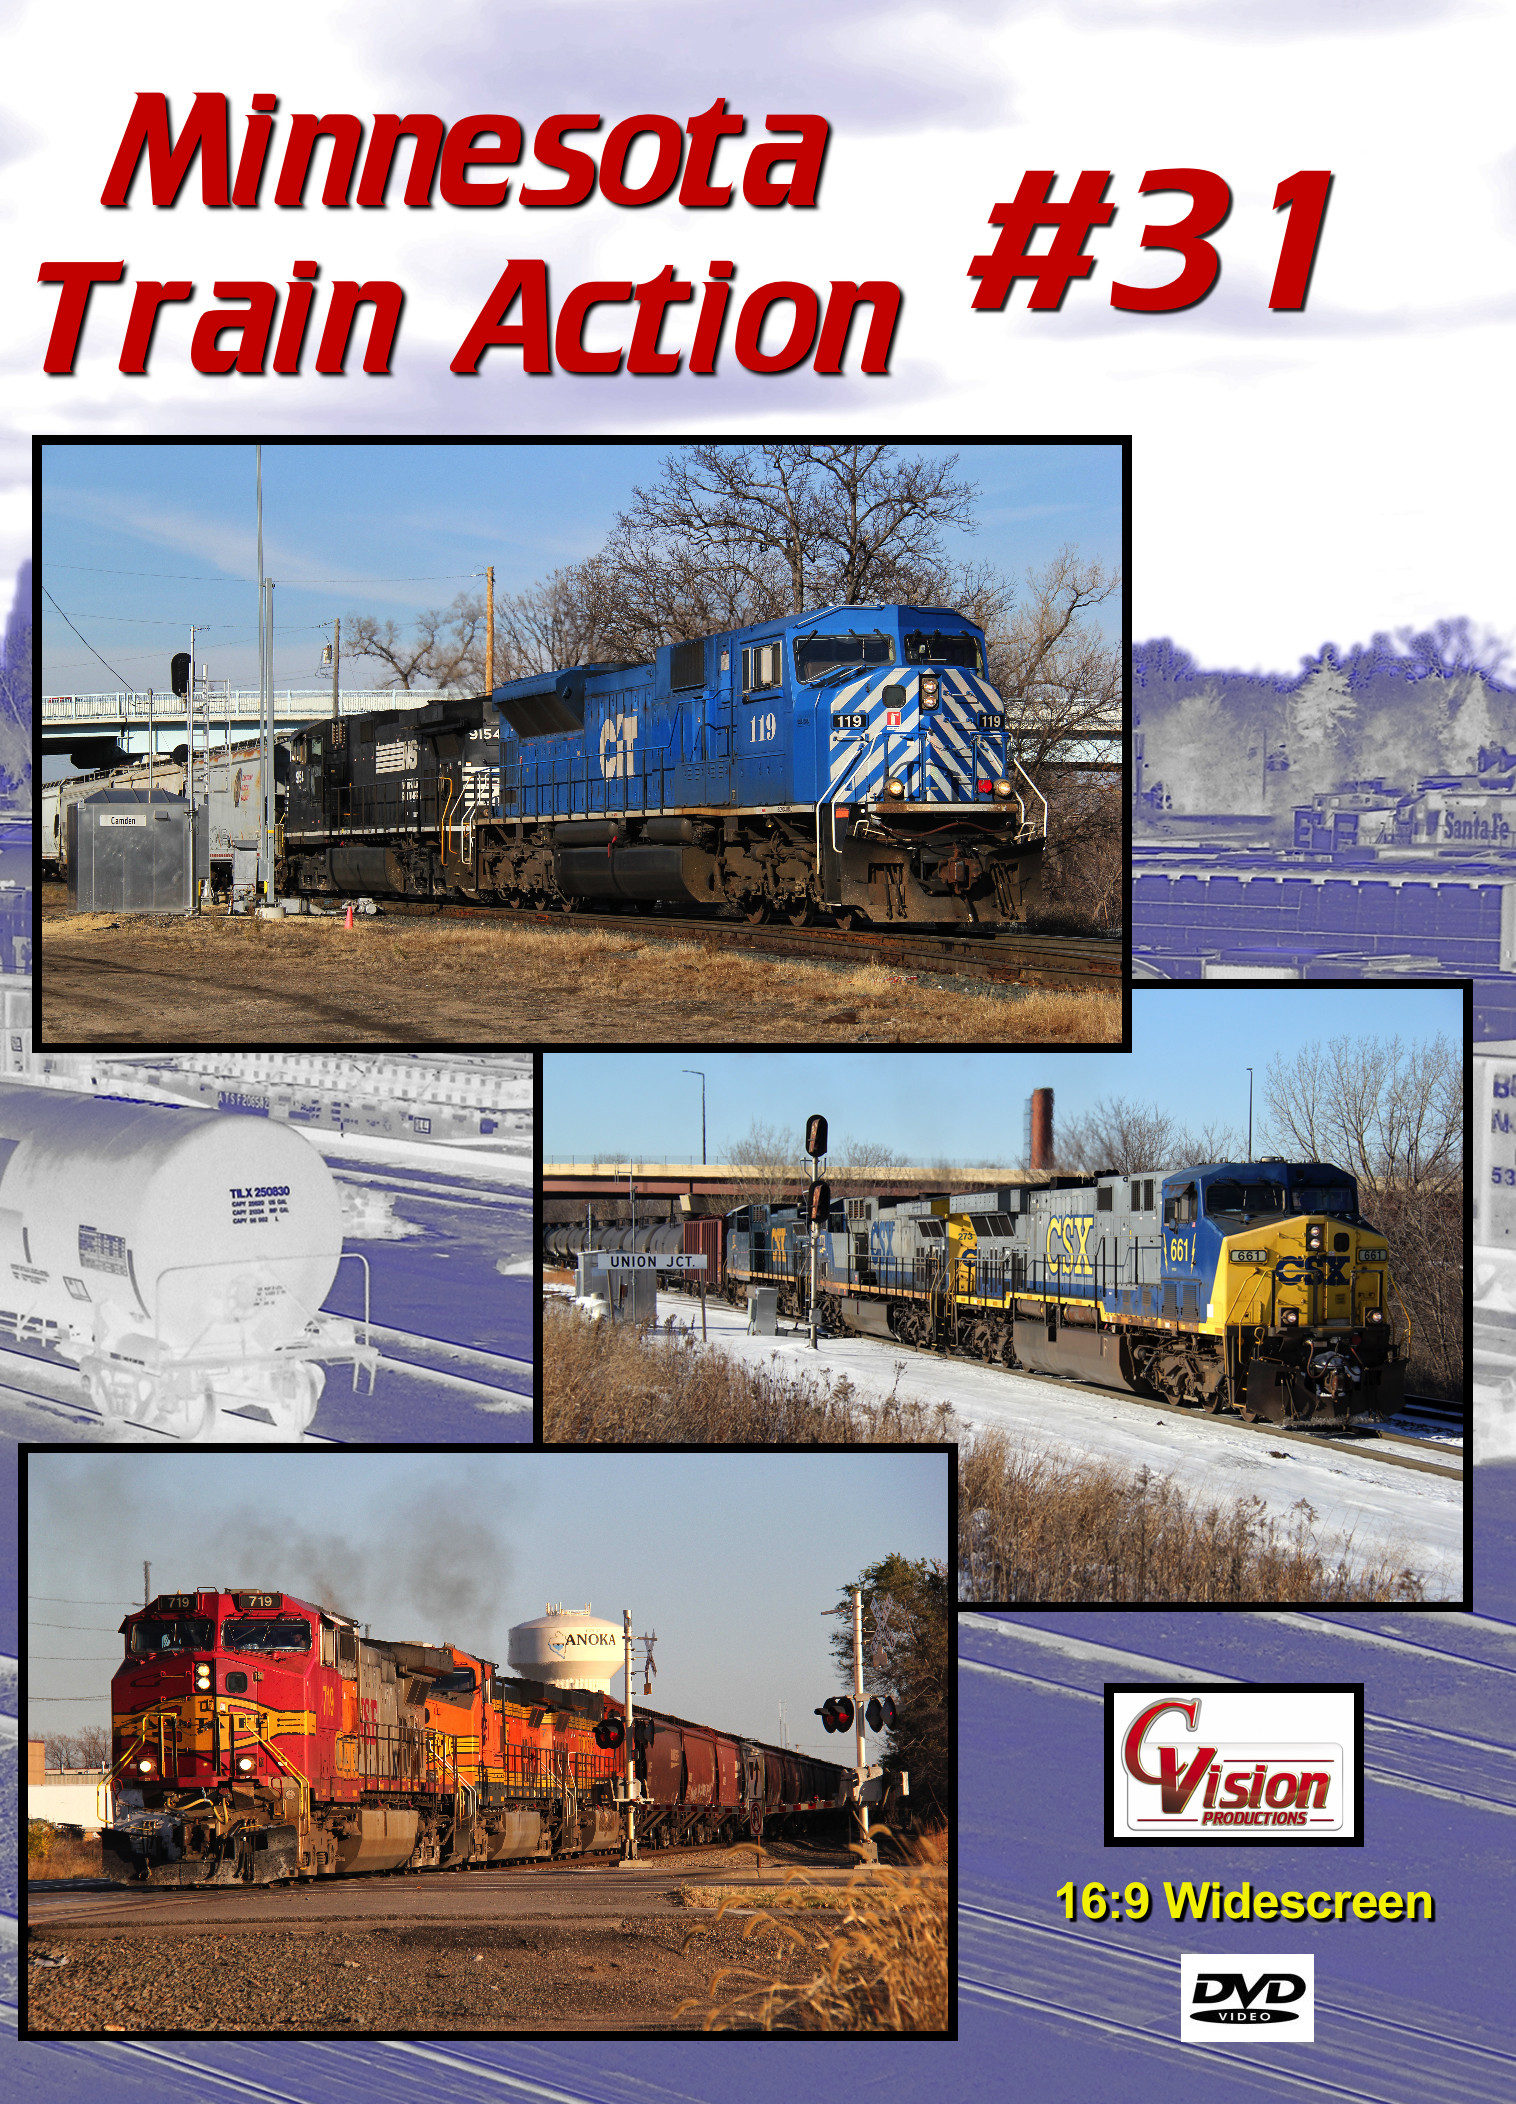 Minnesota Train Action Number 31 DVD C Vision Productions MTA31DVD